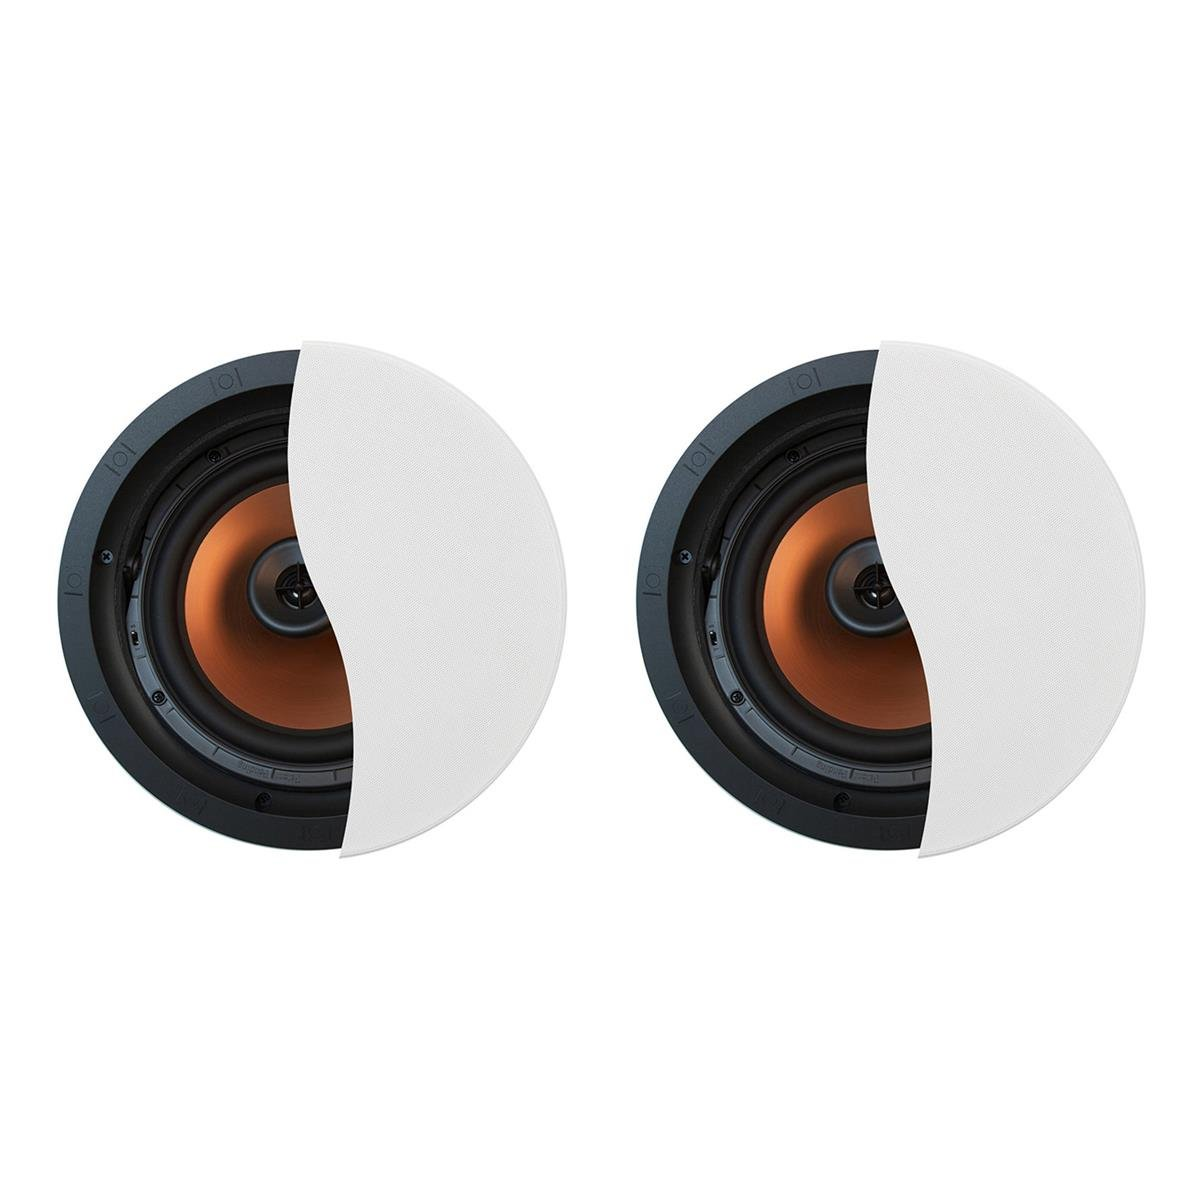 Klipsch CDT-5800-C II 8'' In-Ceiling Pivoting Speakers - Pair (White) by Klipsch